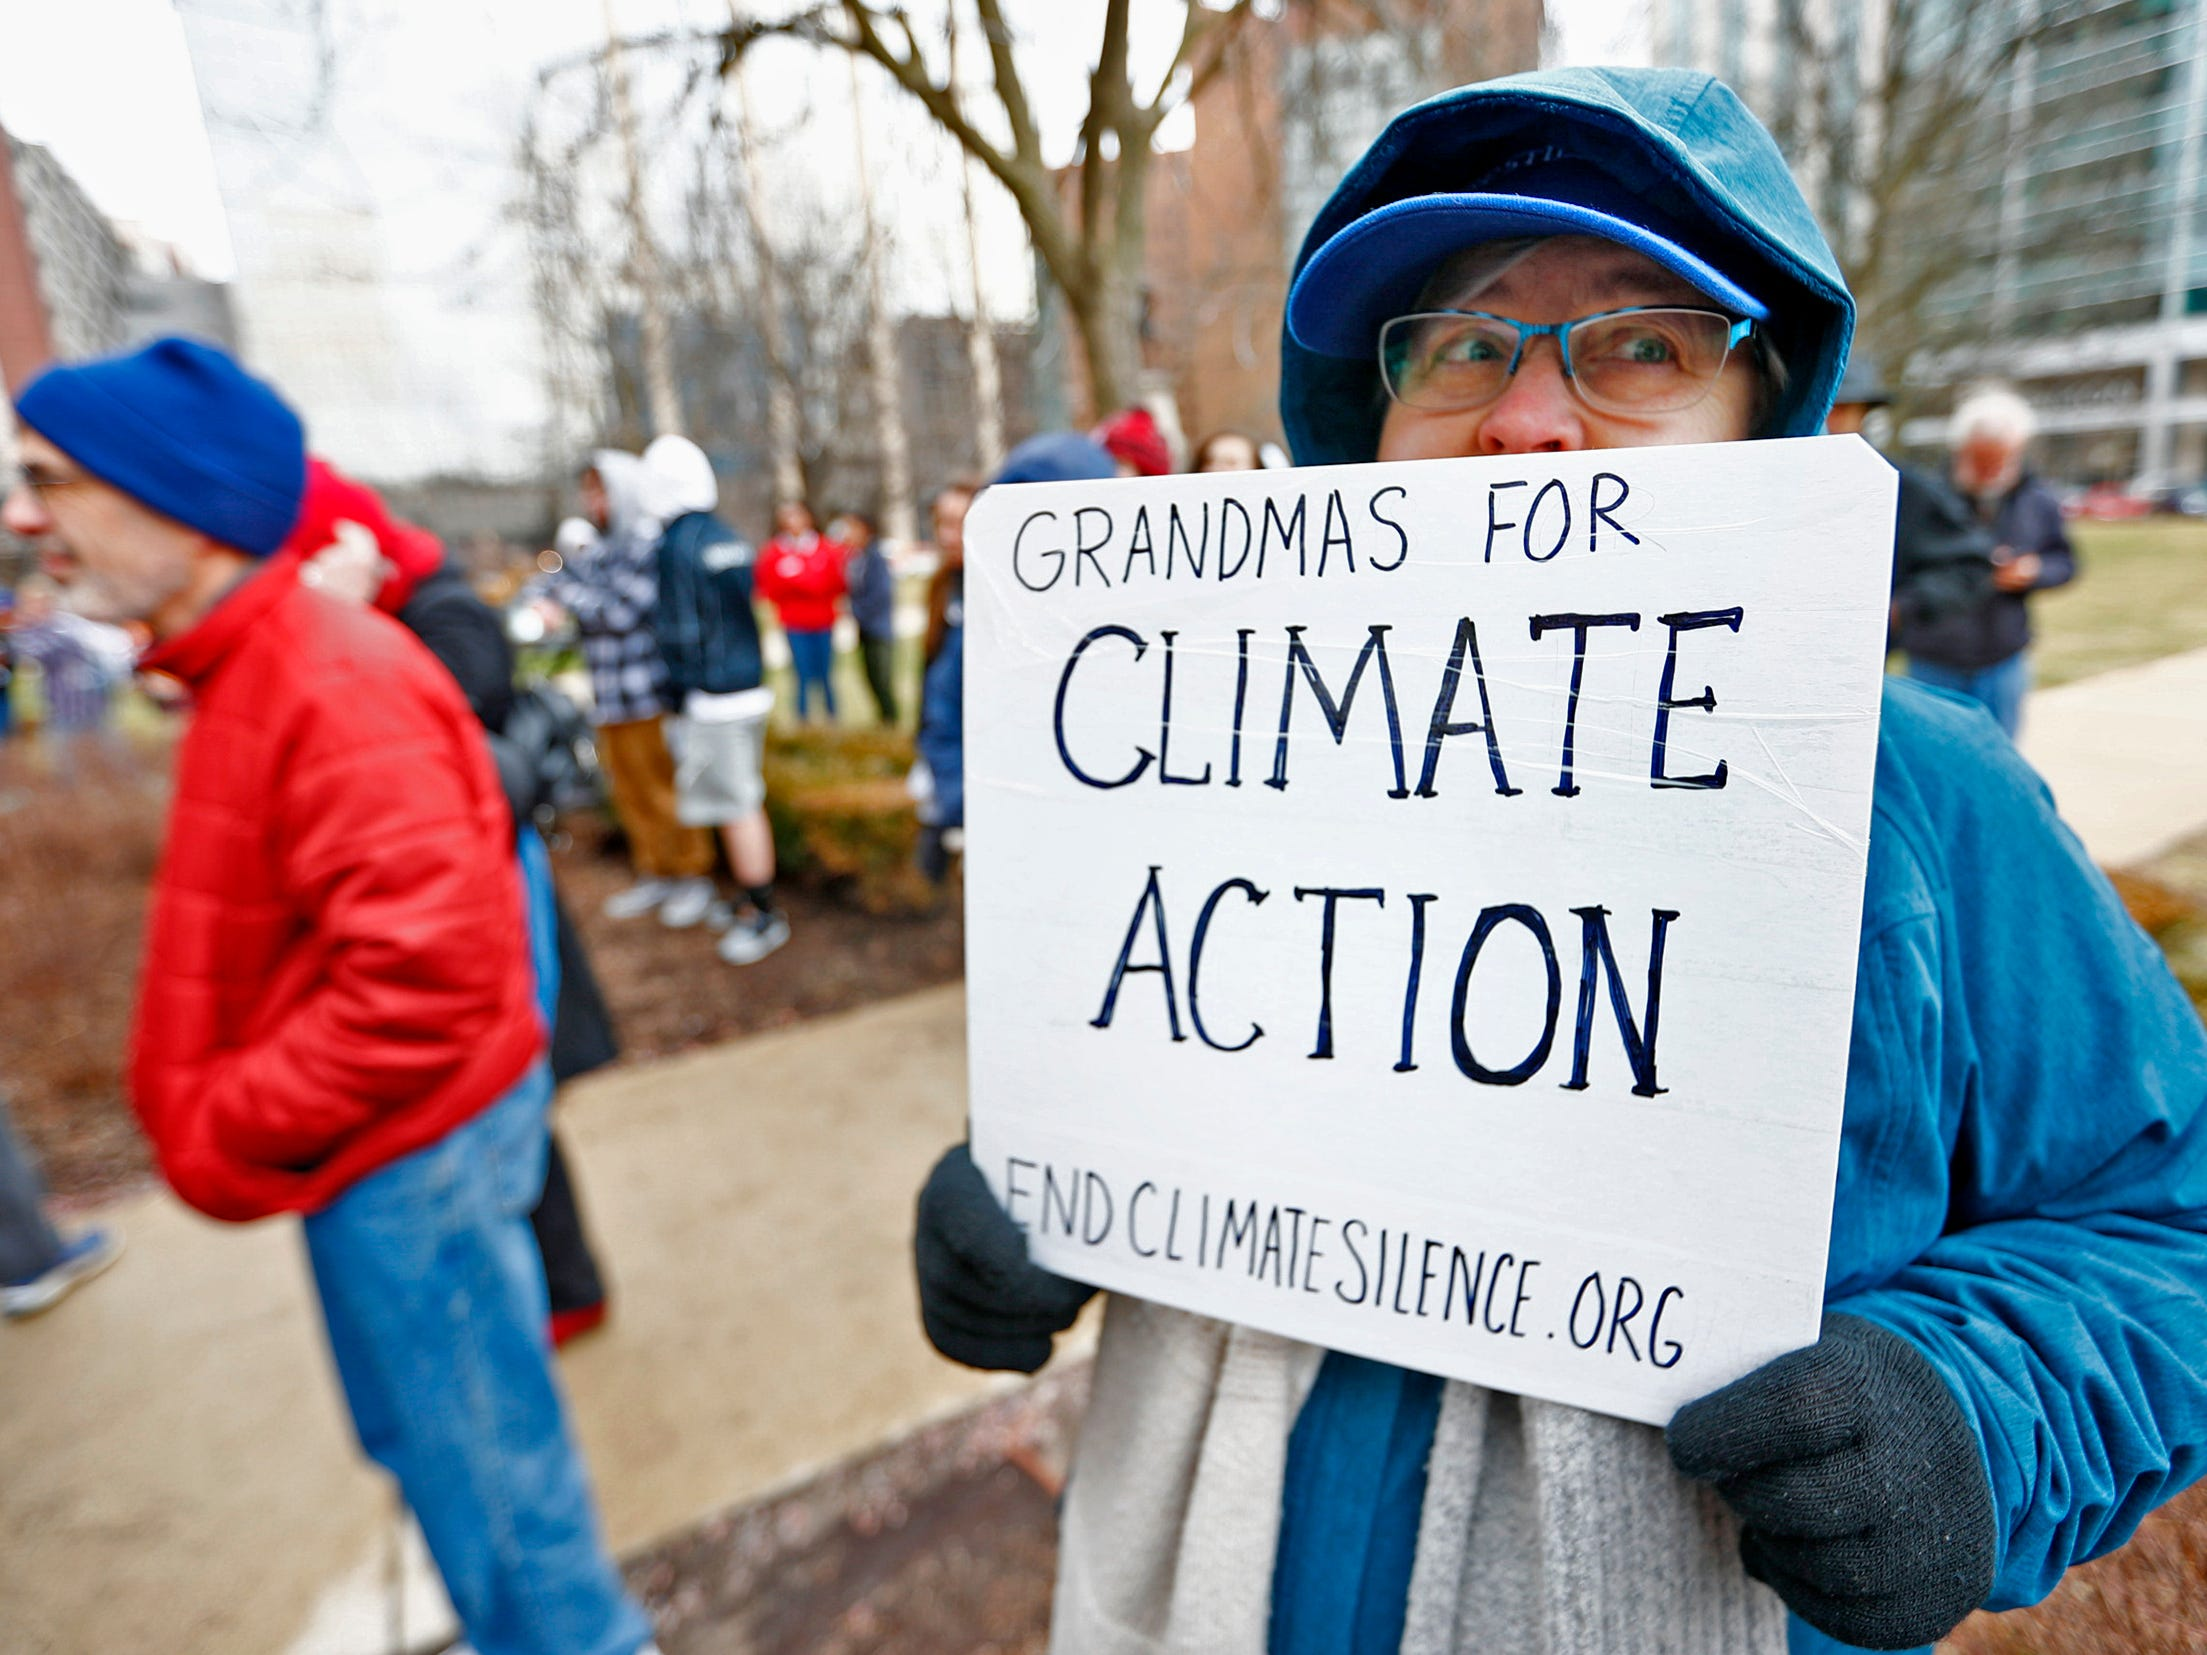 """Brenda Mick, a """"Grandma for climate change,"""" comes to support the Indiana part of the international Climate Strike, Friday, March 15, 2019, held outside the Indiana Statehouse.  She is protesting for her granddaughter.  Mick says she wants her to know about polar bears.  Following in the footsteps of 16-year-old Swedish trailblazer, Greta Thunberg, students around the world are skipping school to protest government inaction on climate change."""